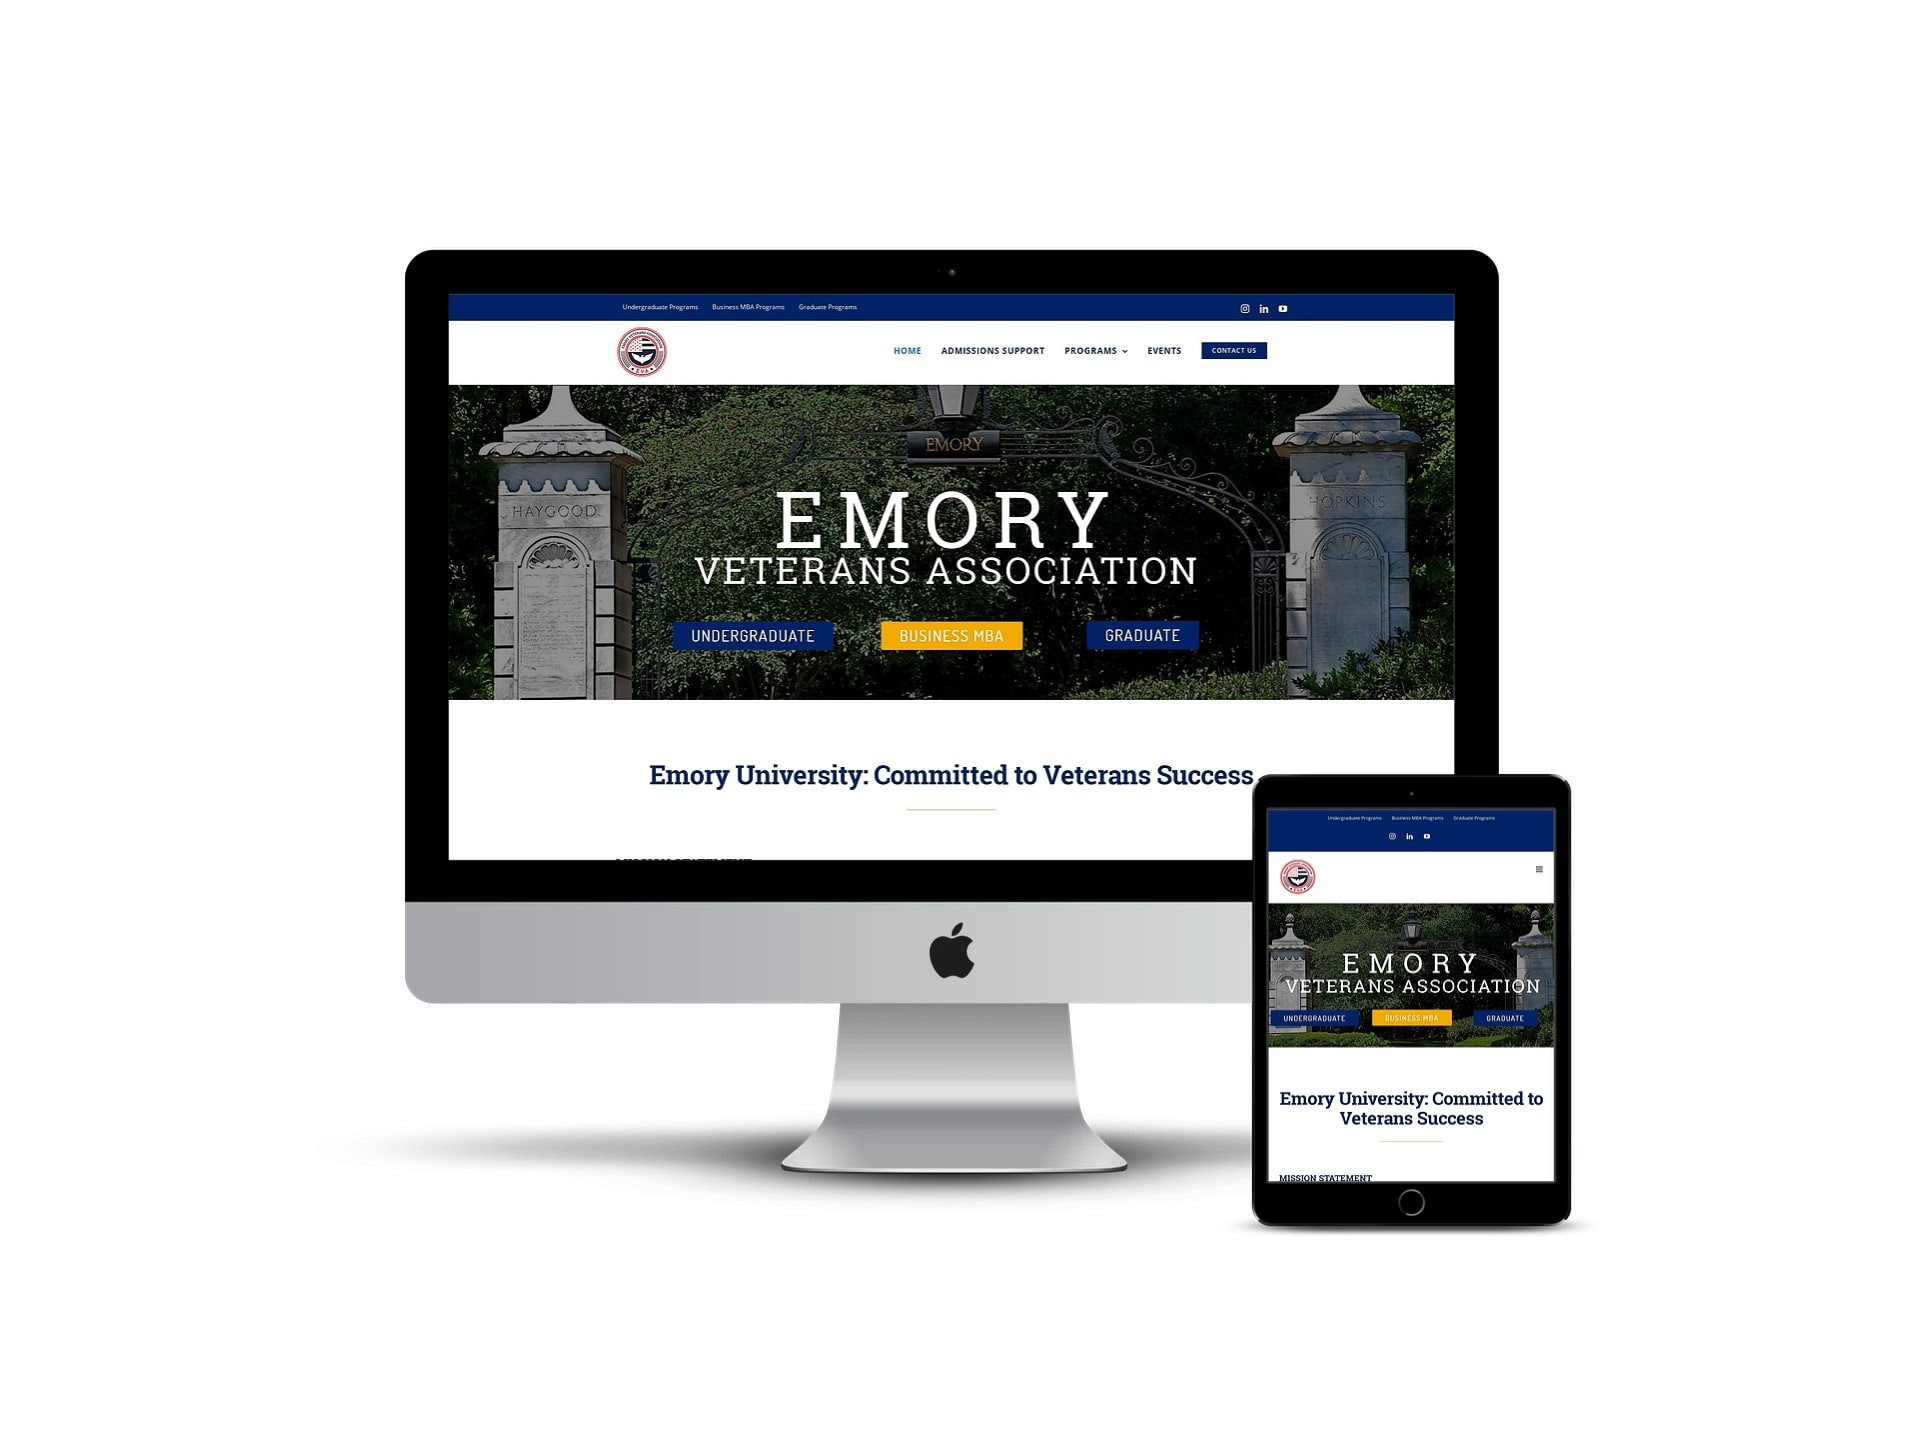 Emory Veterans Association - home page on different smart screens